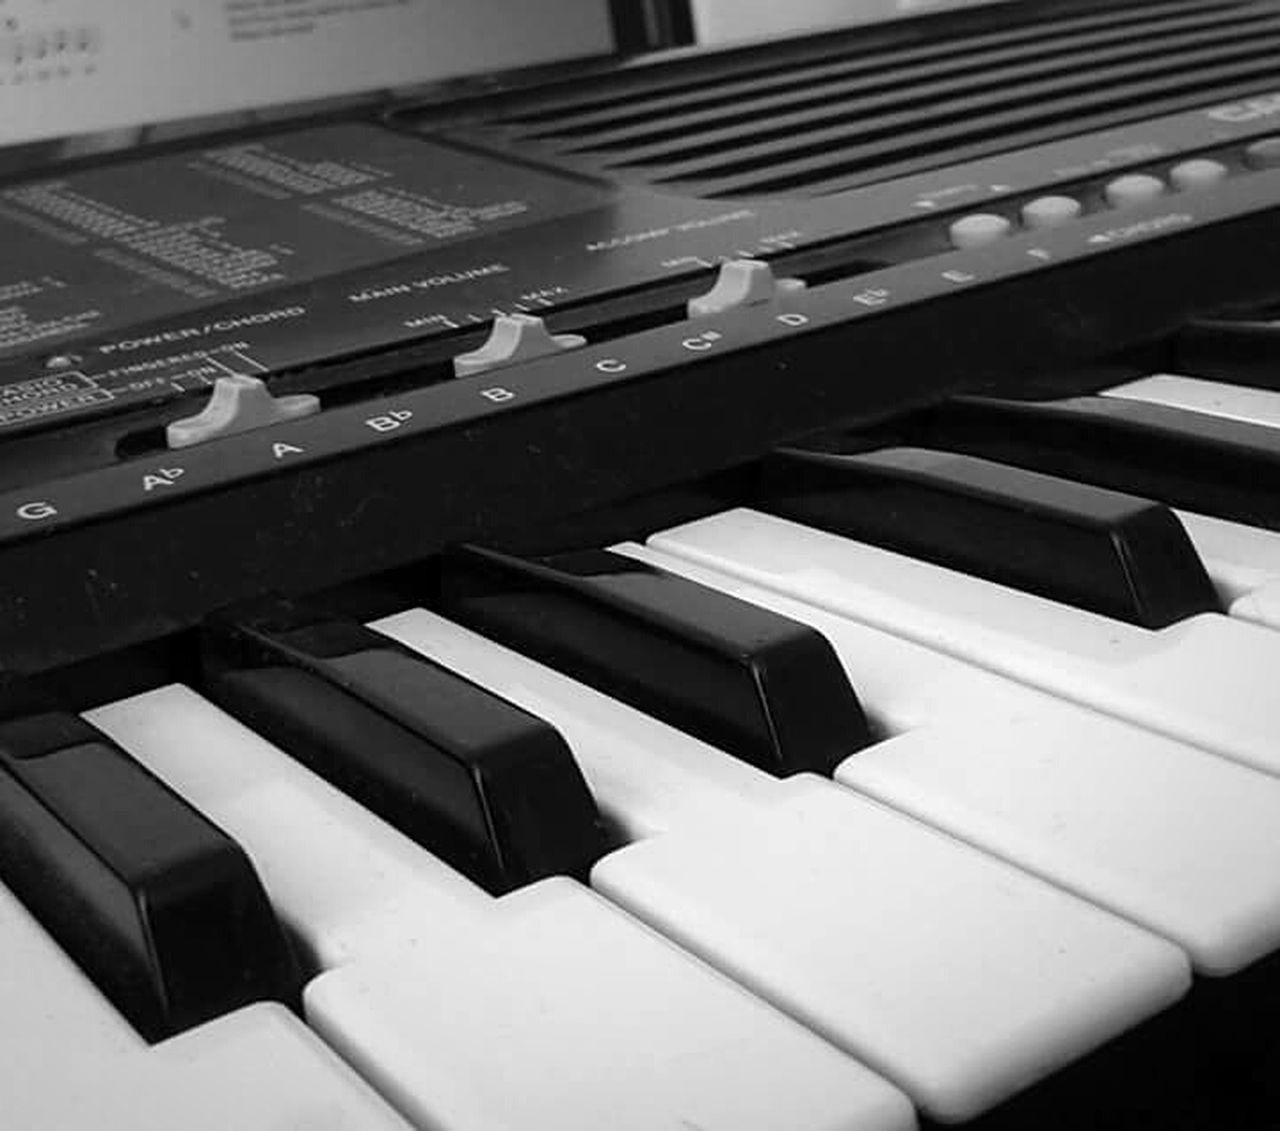 Life is like a piano... Life Lifestyles Piano Music Light And Shadow Black & White Art Artist Art Photography Dayandnight Contrast Indoors  Women Who Inspire You Photography Inspirational Emotions Rules Of Life Silence Is Golden ArtOfLiving Colors Musicinstrument Piano Keys Sound Of Life Soundtrack Of Our Lives Catching The Emotions In A Shot EyeEmNewHere